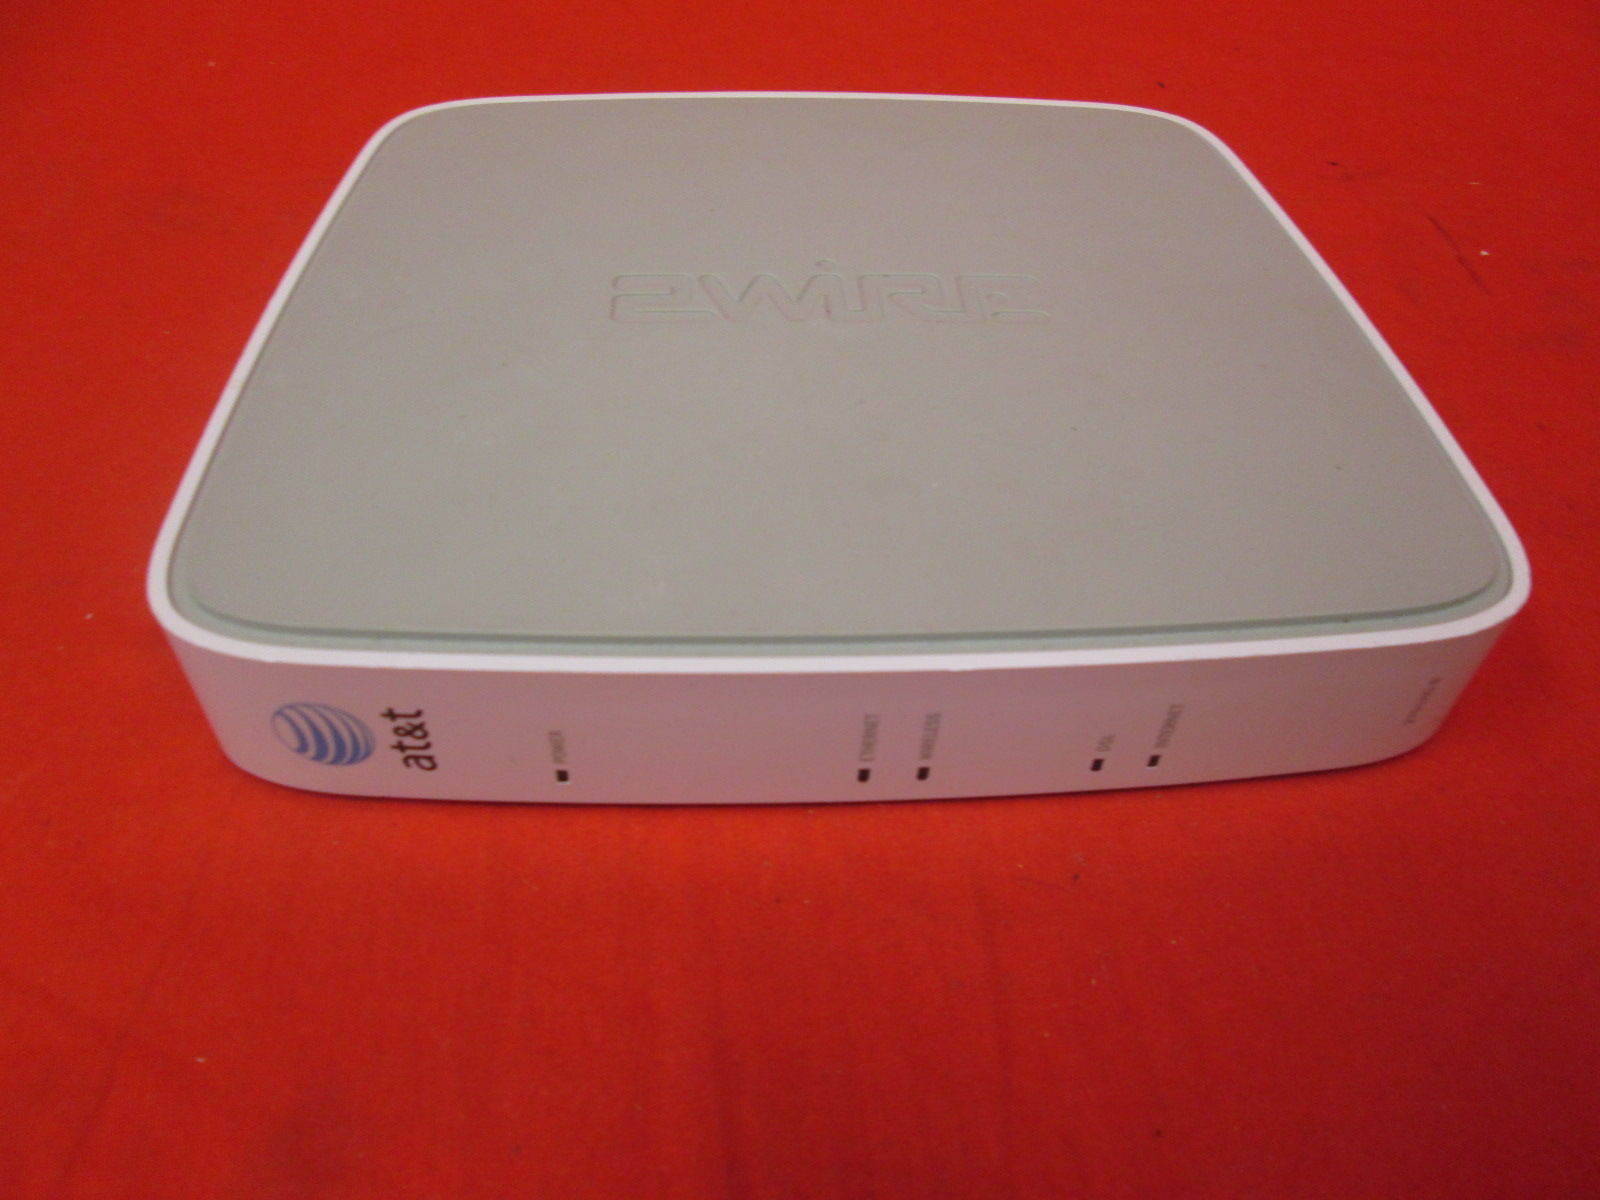 2WIRE Gateway Ethernet Router Model# 2701HG-B Incomplete